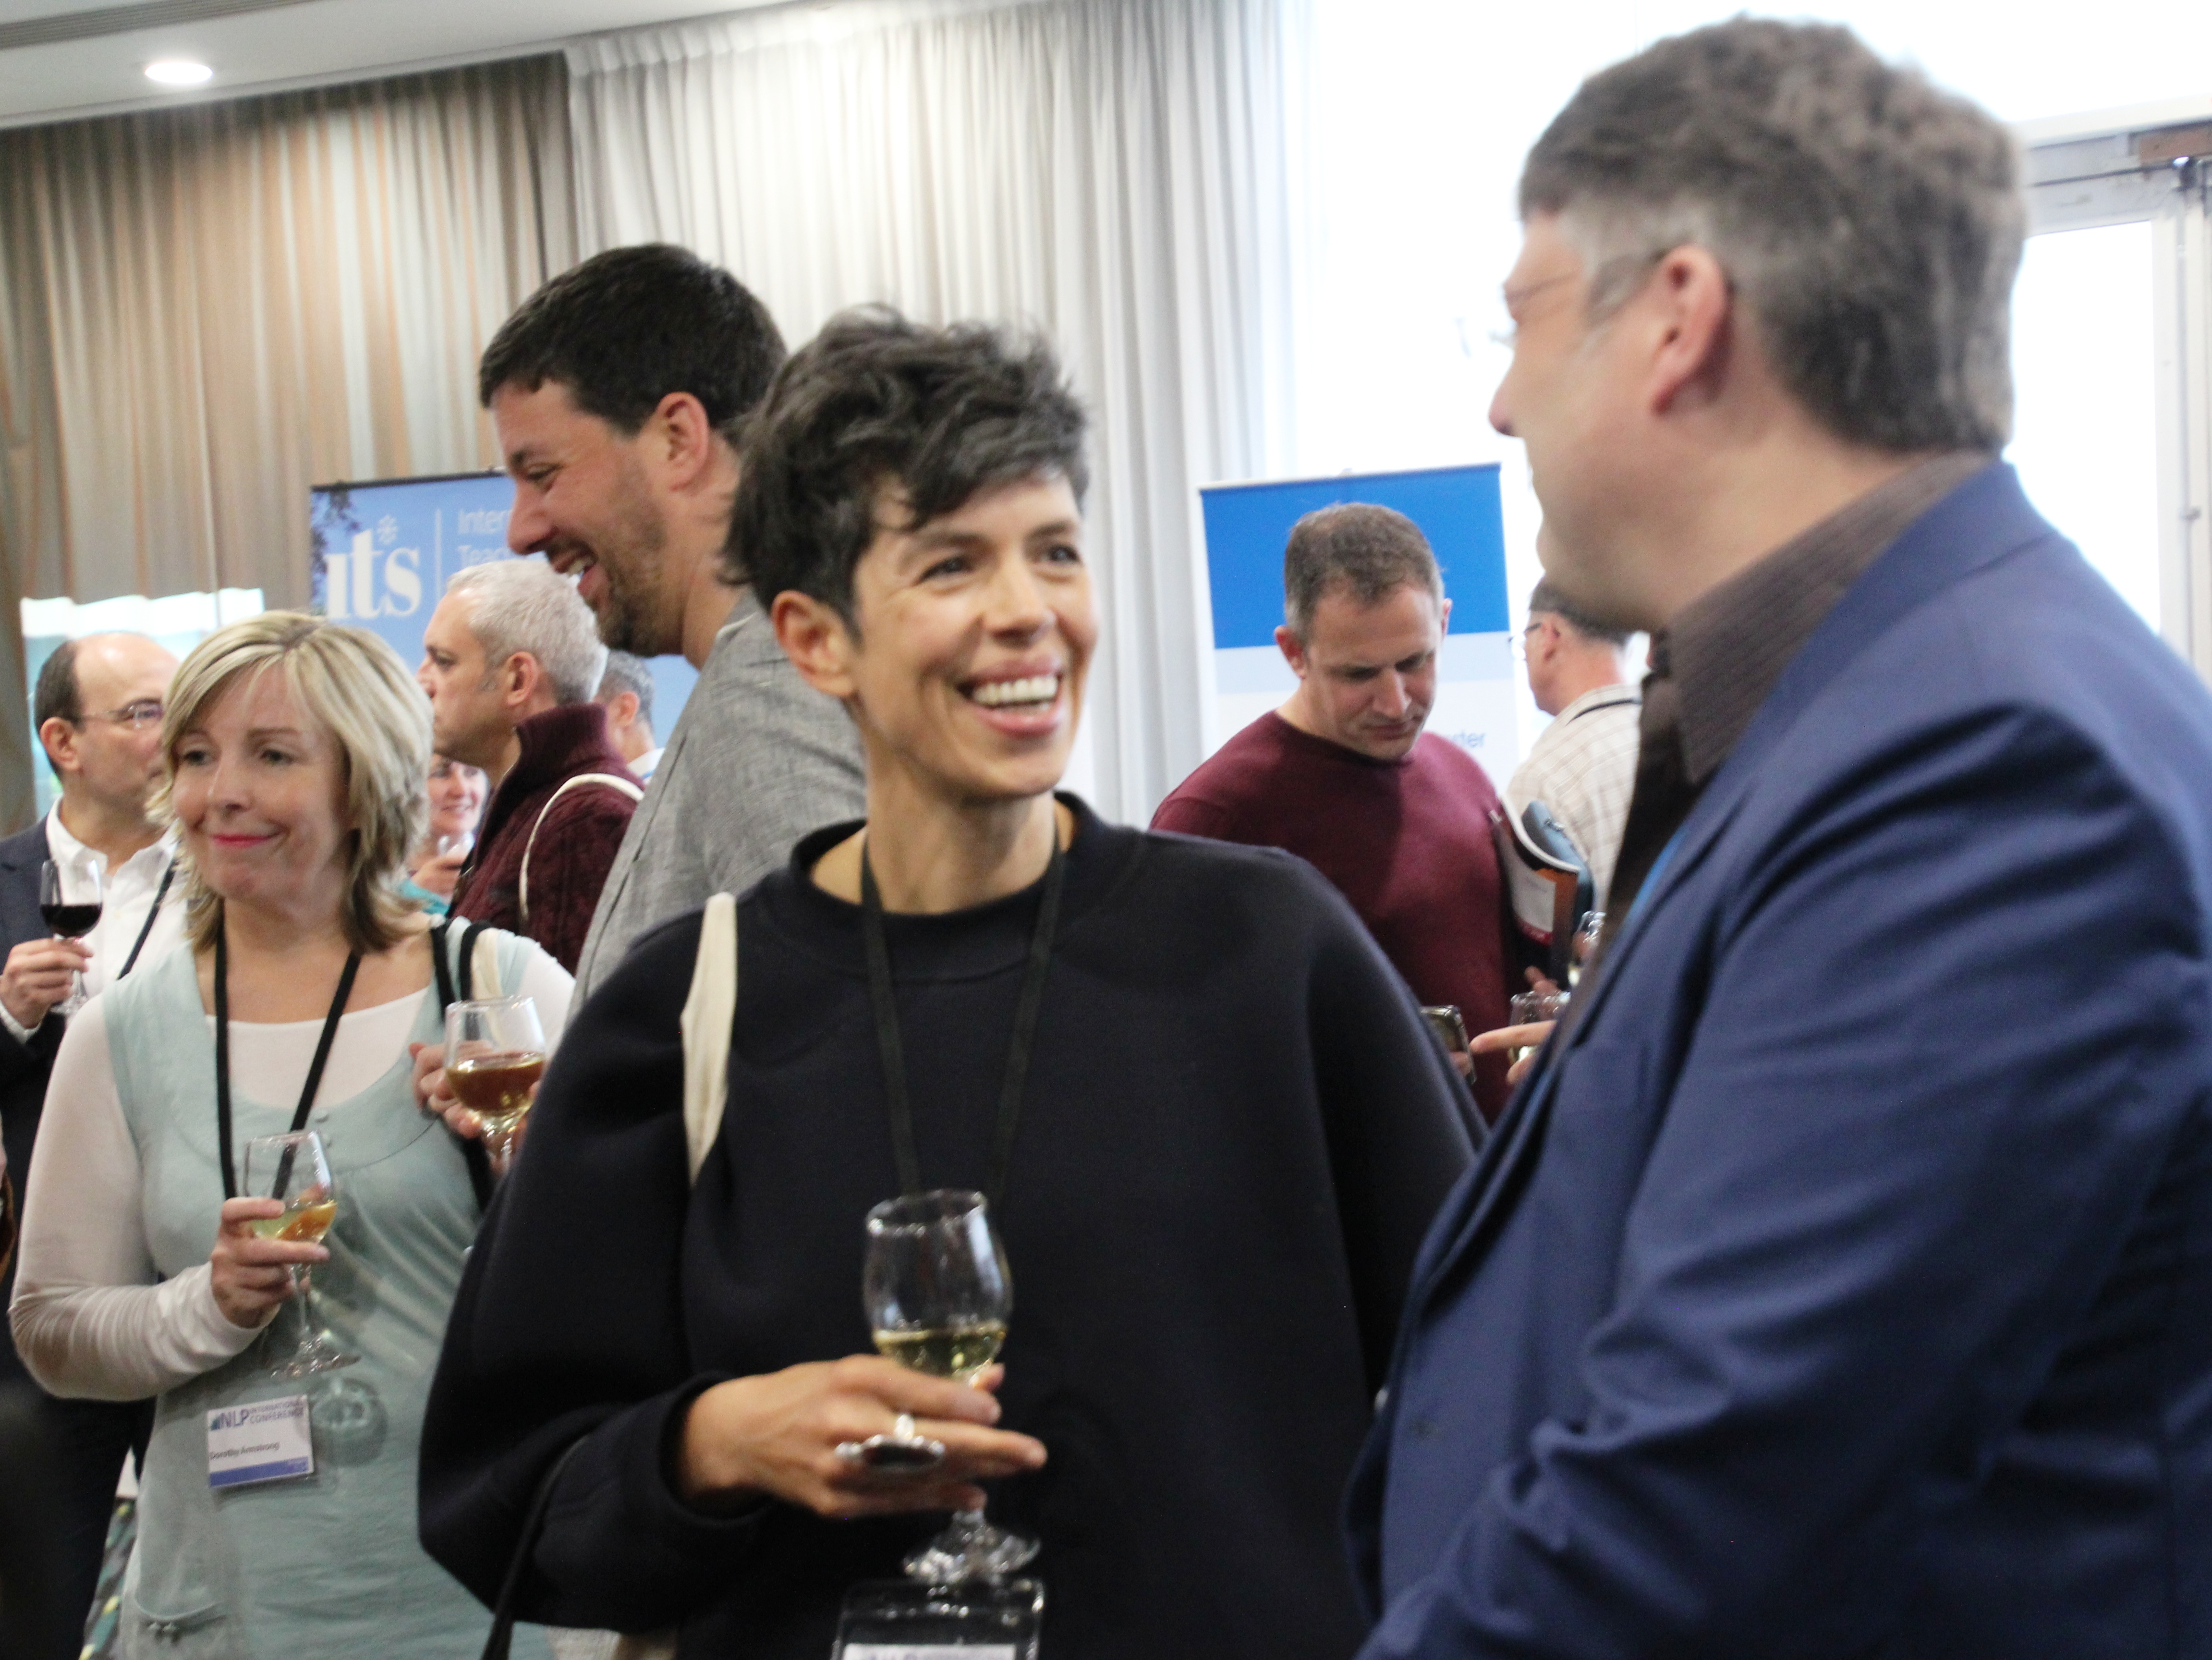 Socialising at NLP Conference 2017